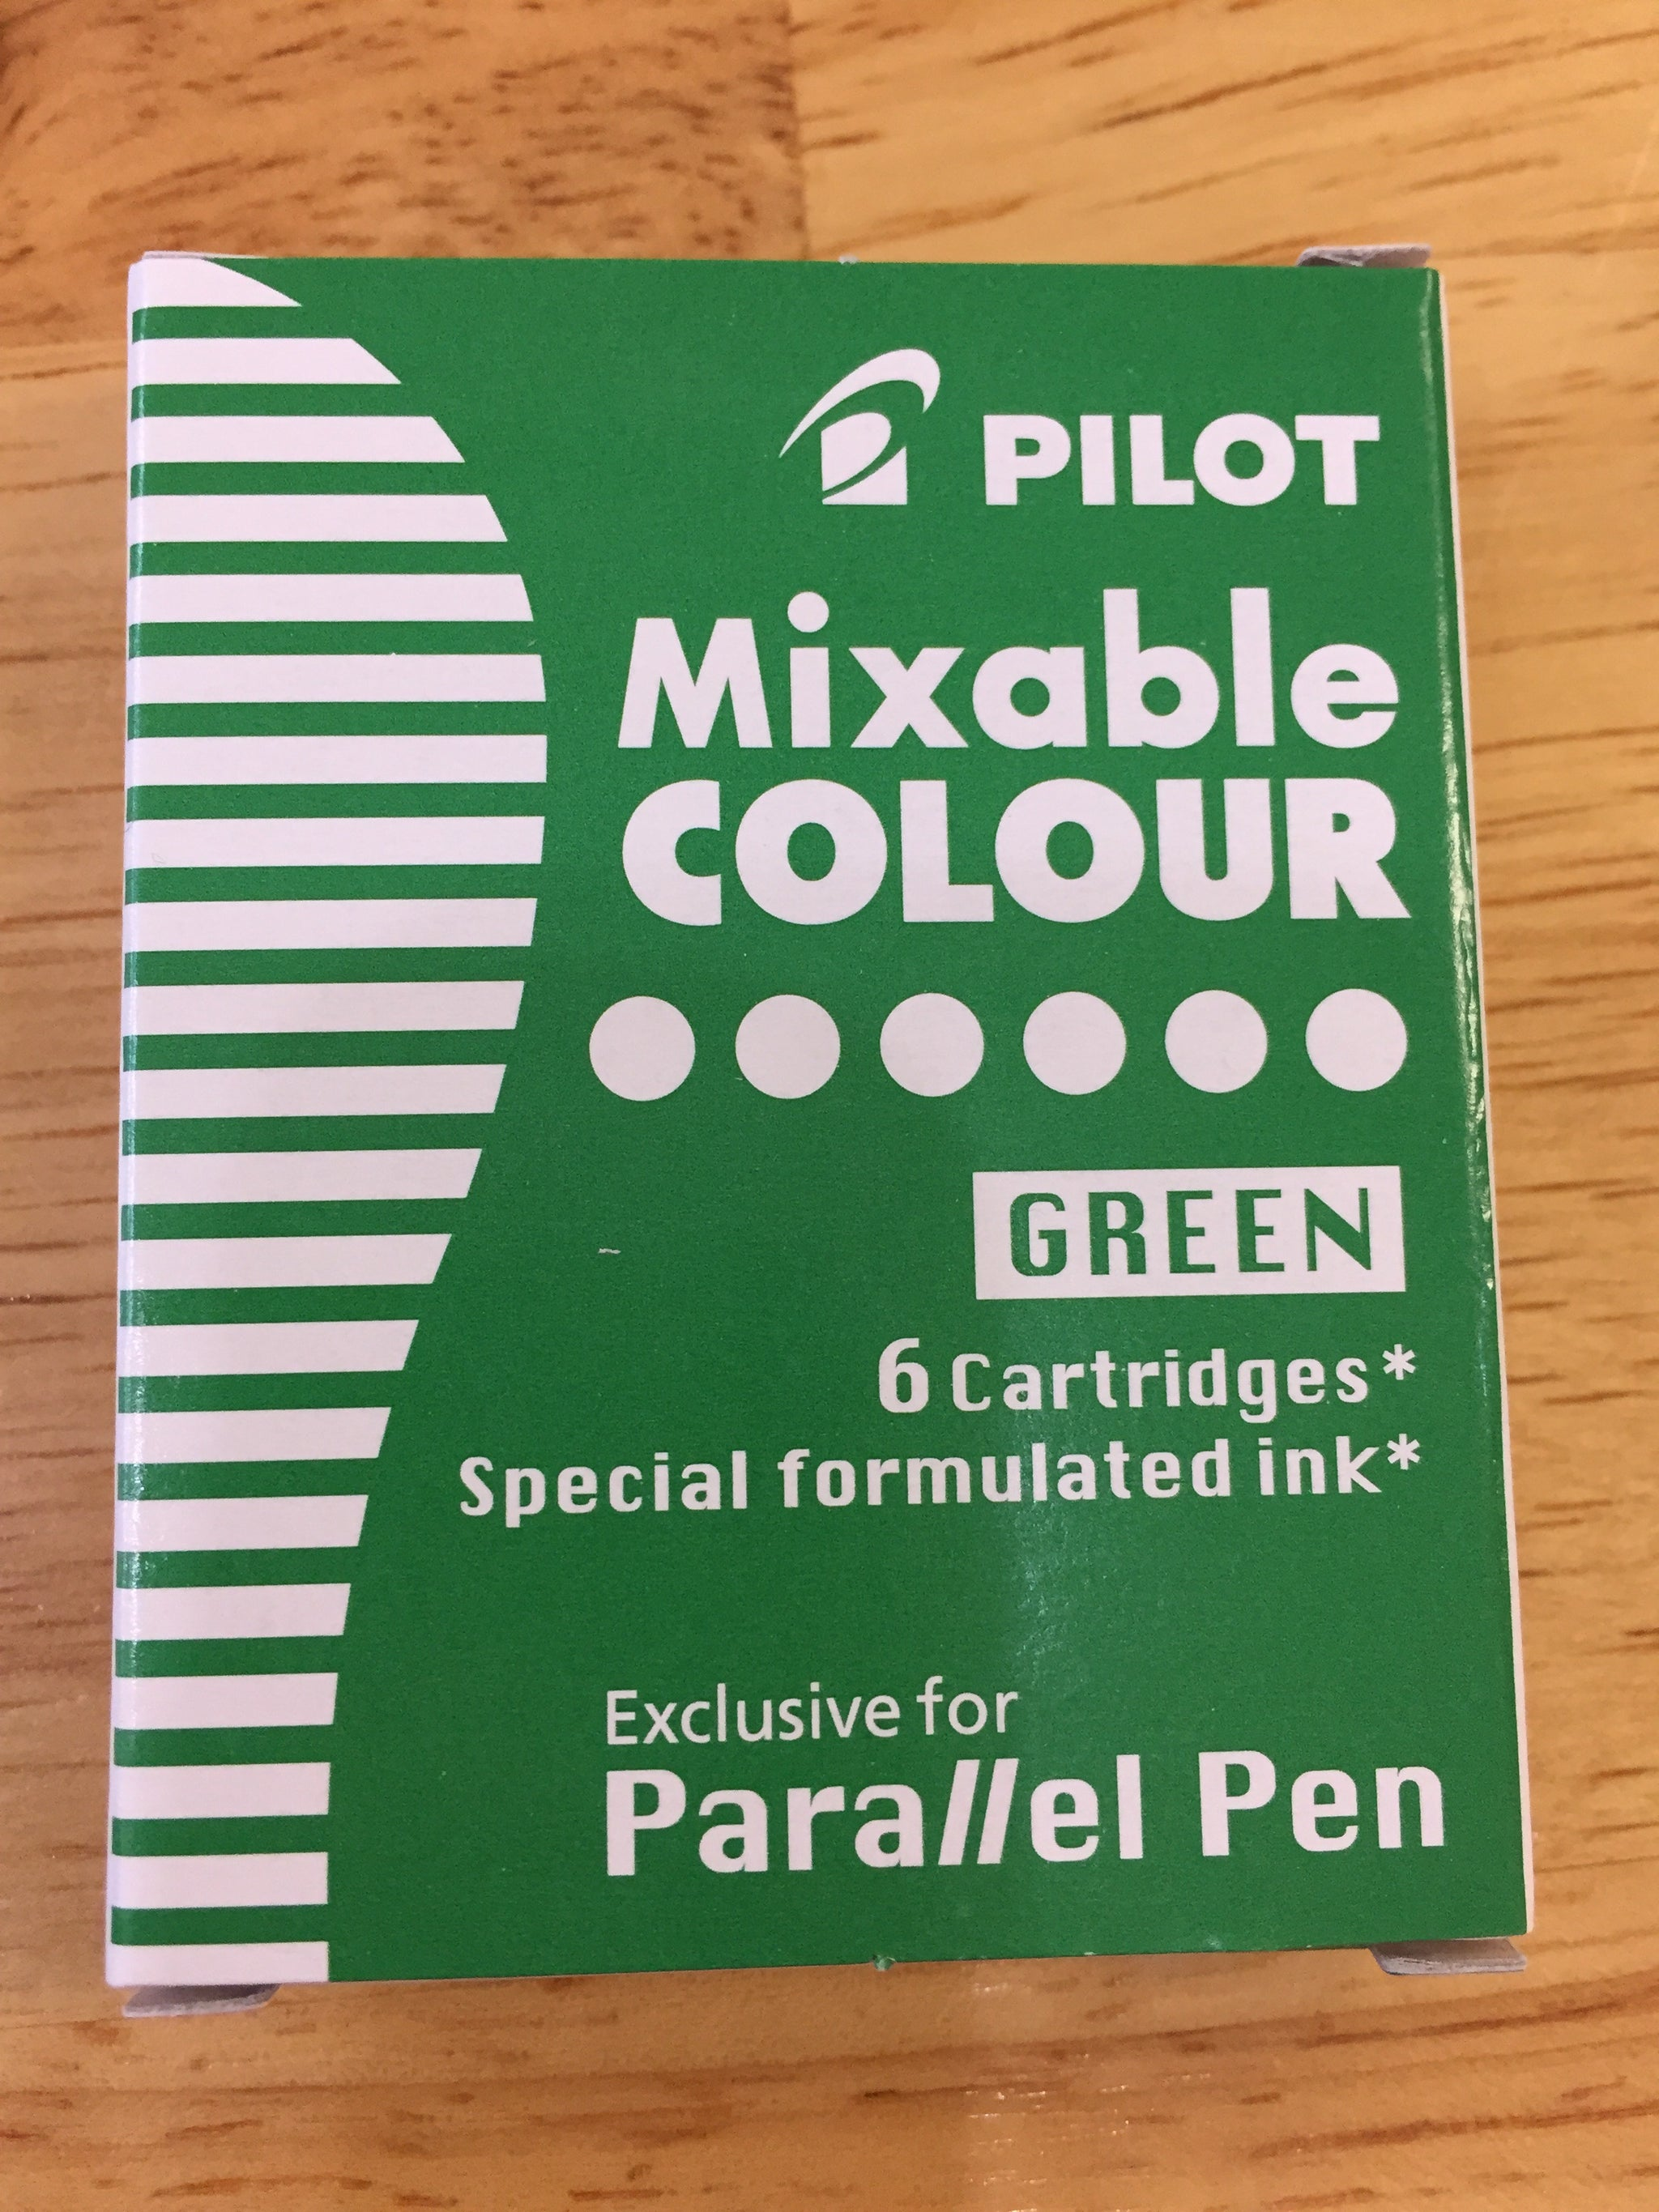 Pilot Mixable Colour Solid Colors - Refills